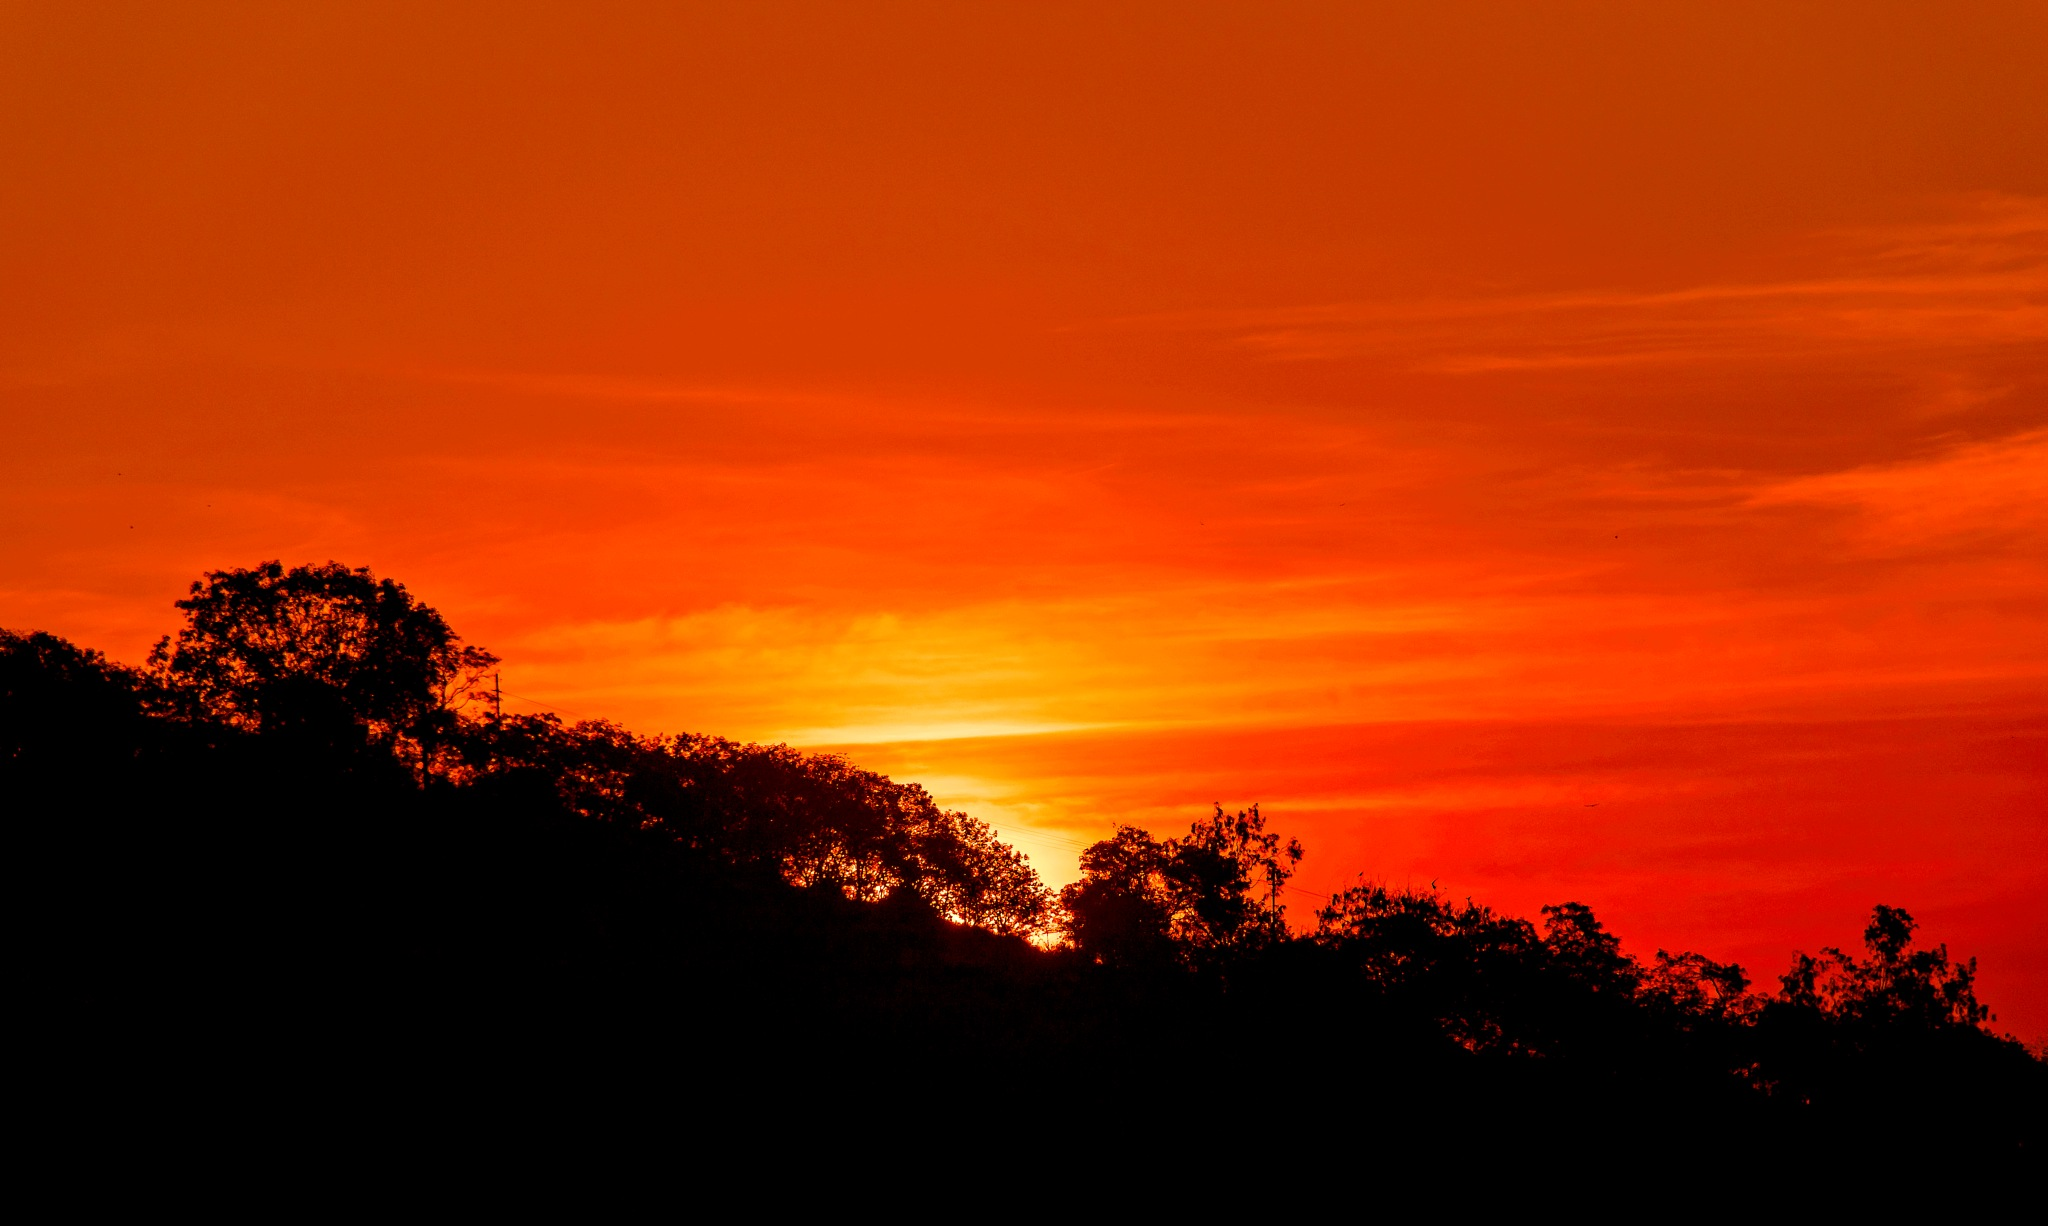 Fire in the sky by DrSudhir Hasamnis